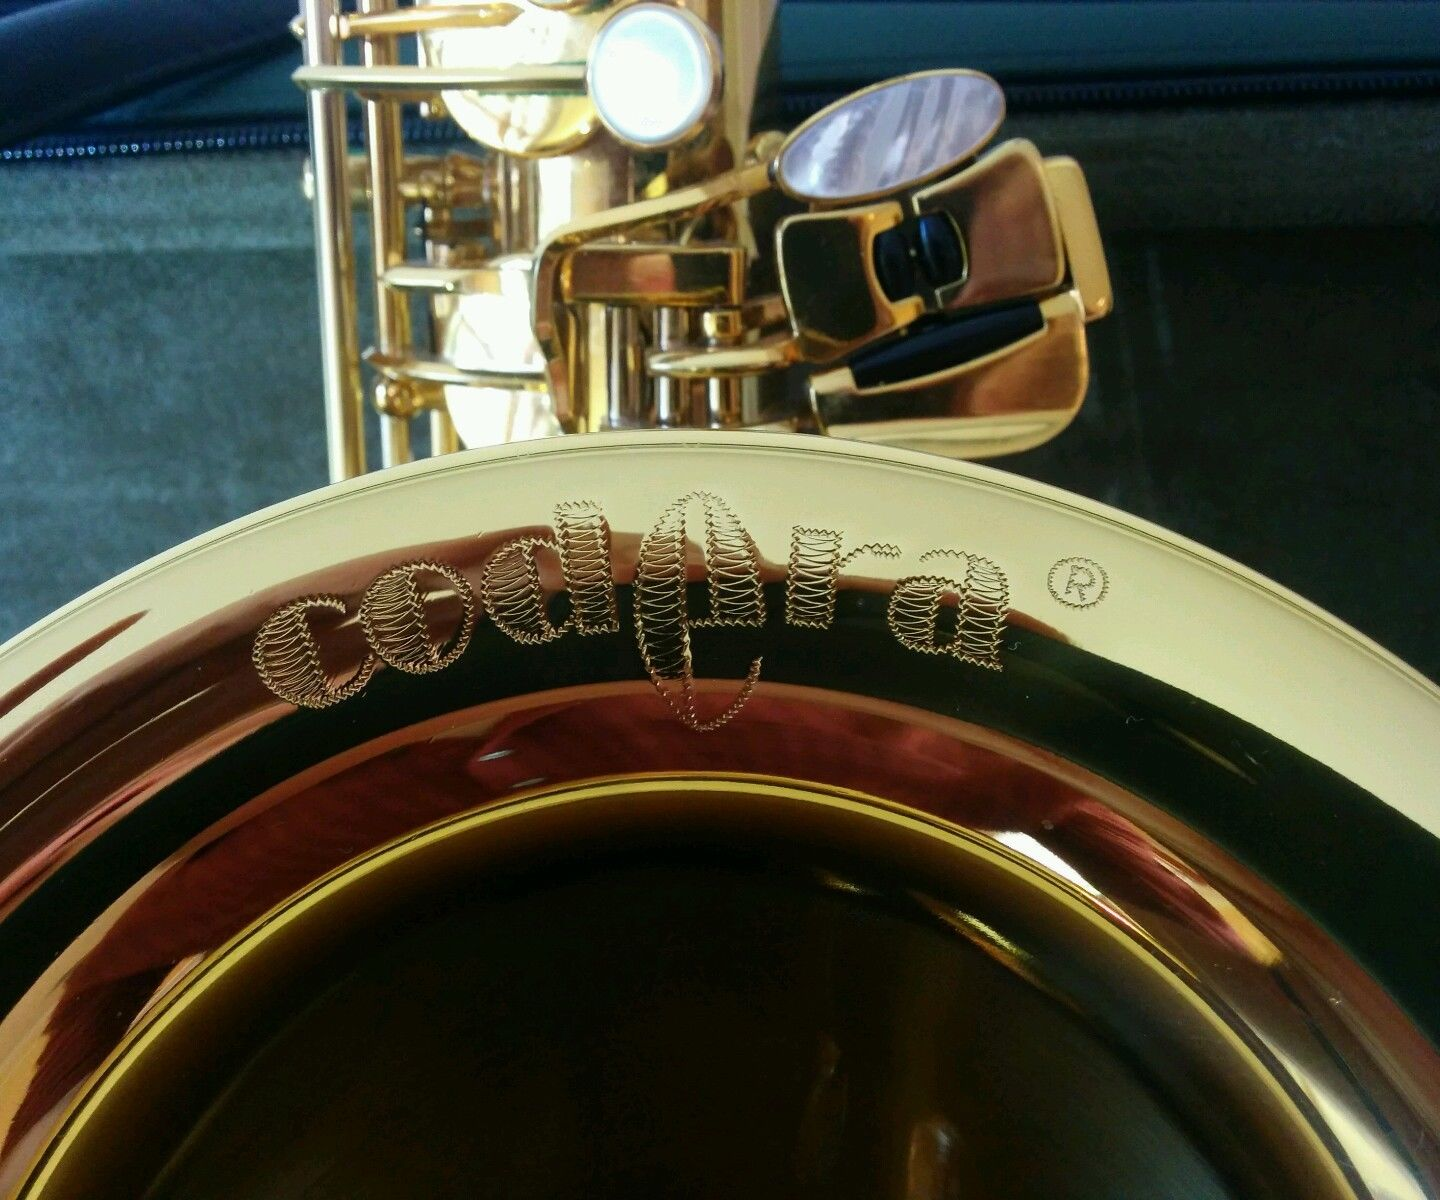 B&S Codera saxophone, Codera bell engraving, sax keys, German saxophone